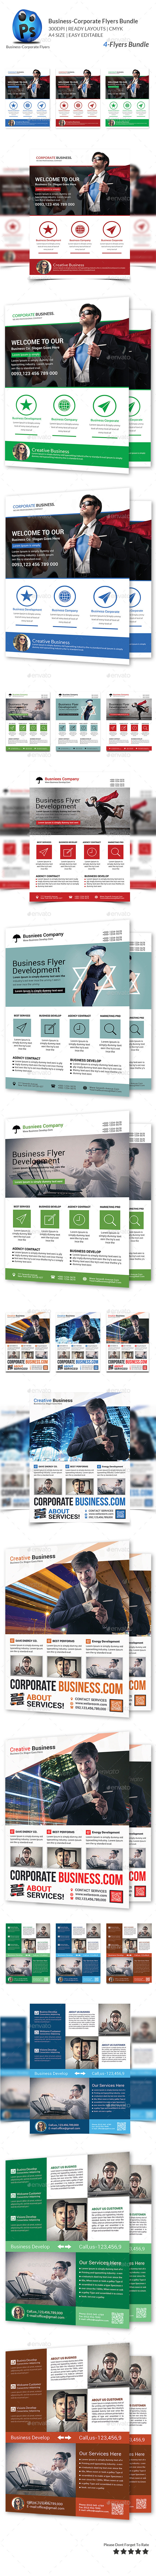 GraphicRiver Corporate Business 4 Flyer Bundle 10141588